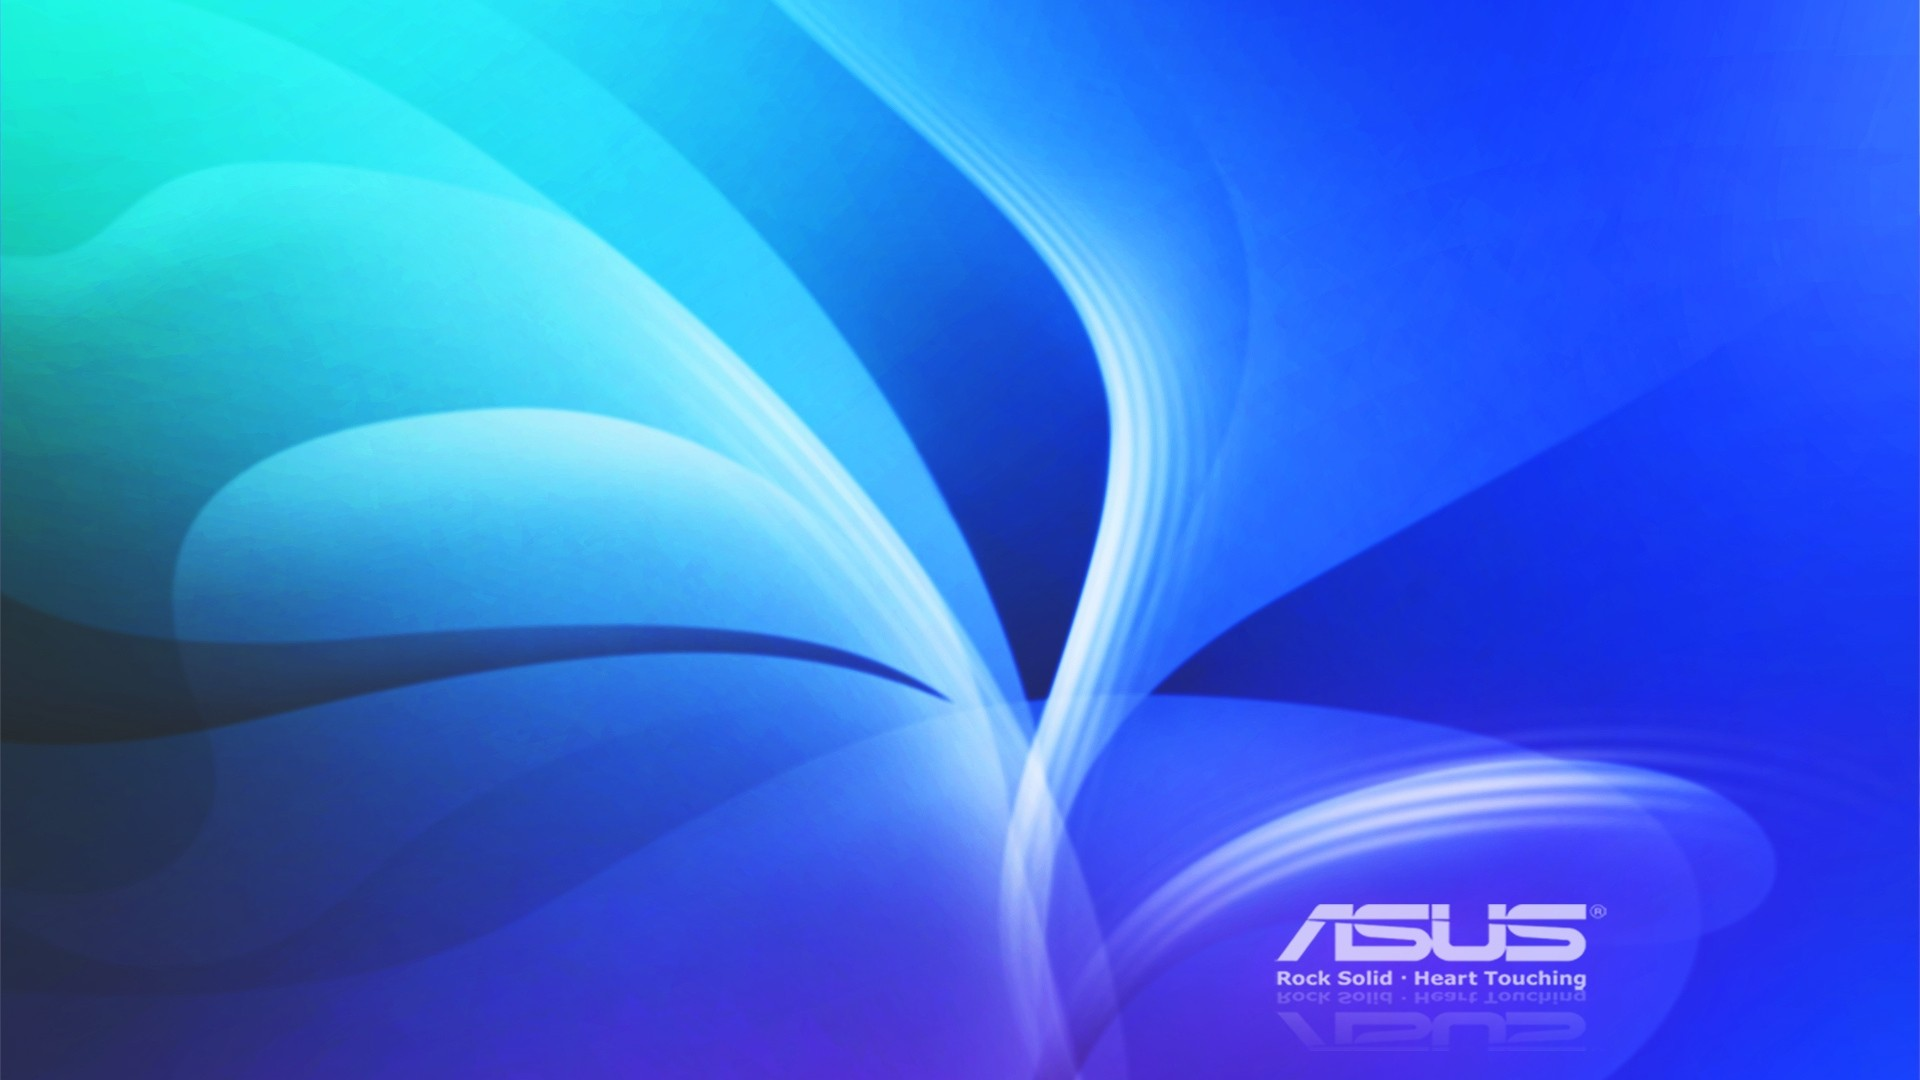 Asus PC Wallpaper